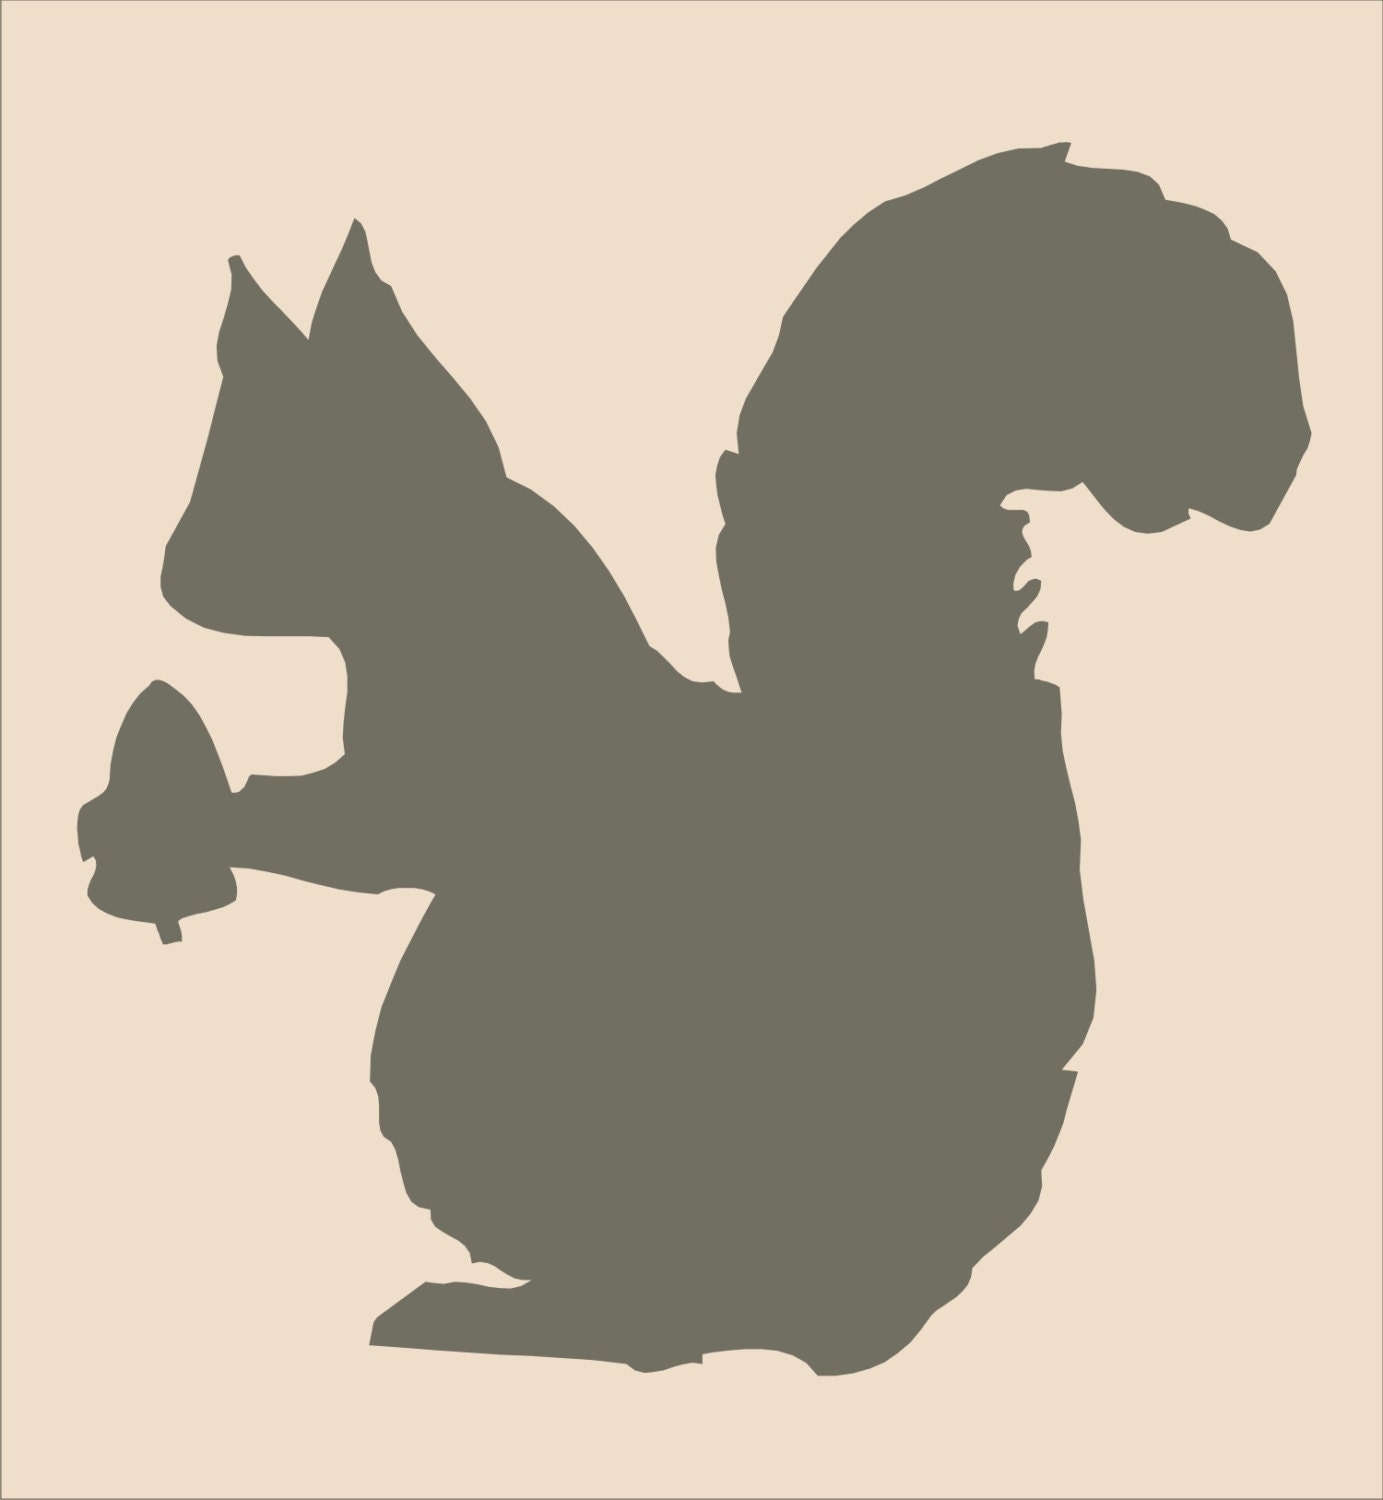 squirrel stencil images reverse search